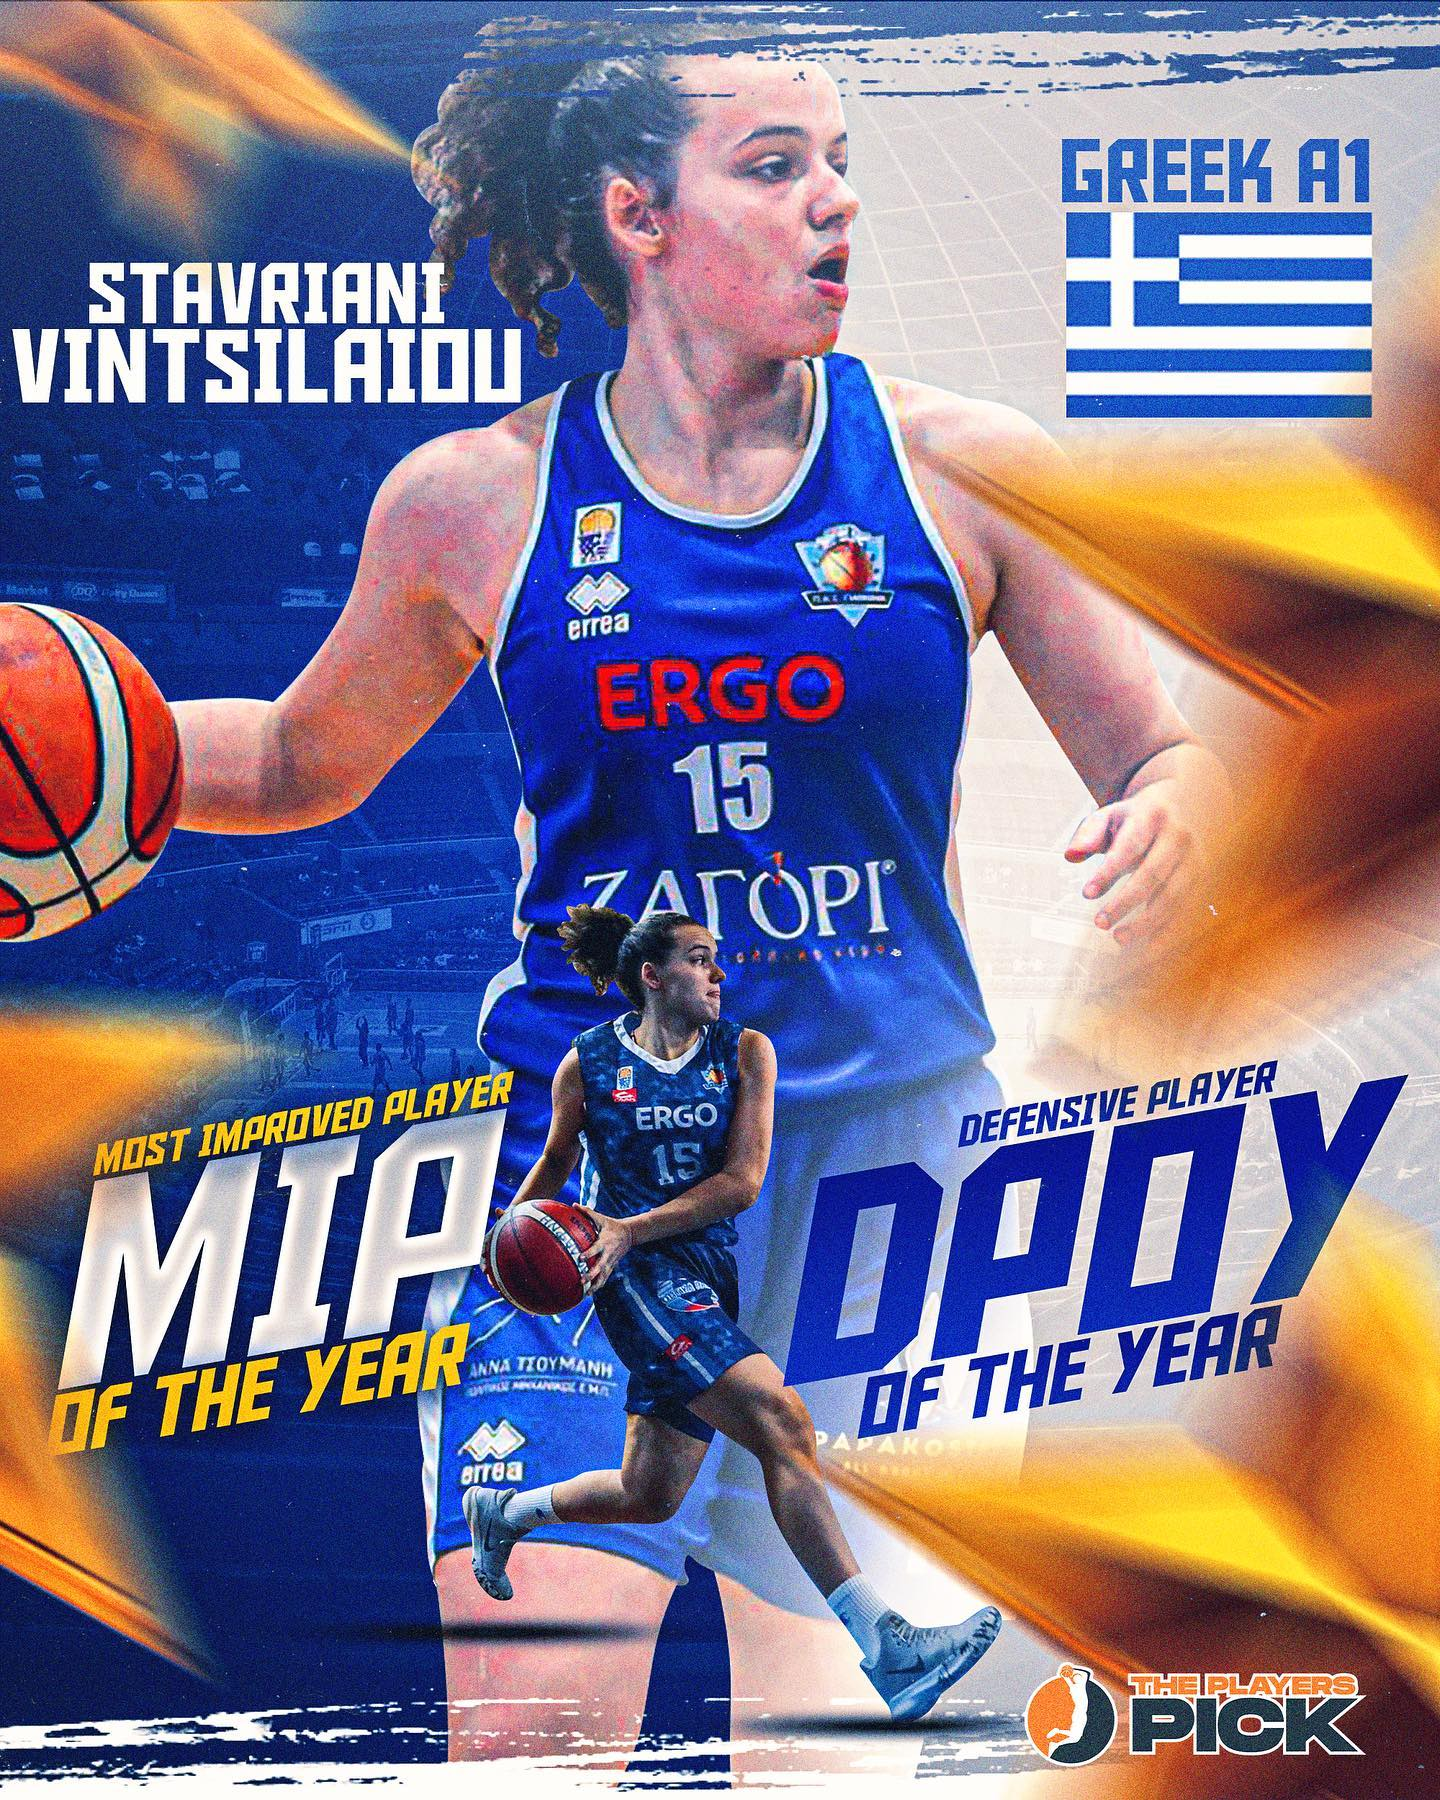 Stavriani Vintsilaiou is the Most Improved Player & Defensive Player of the Year in Greece 2020/21!